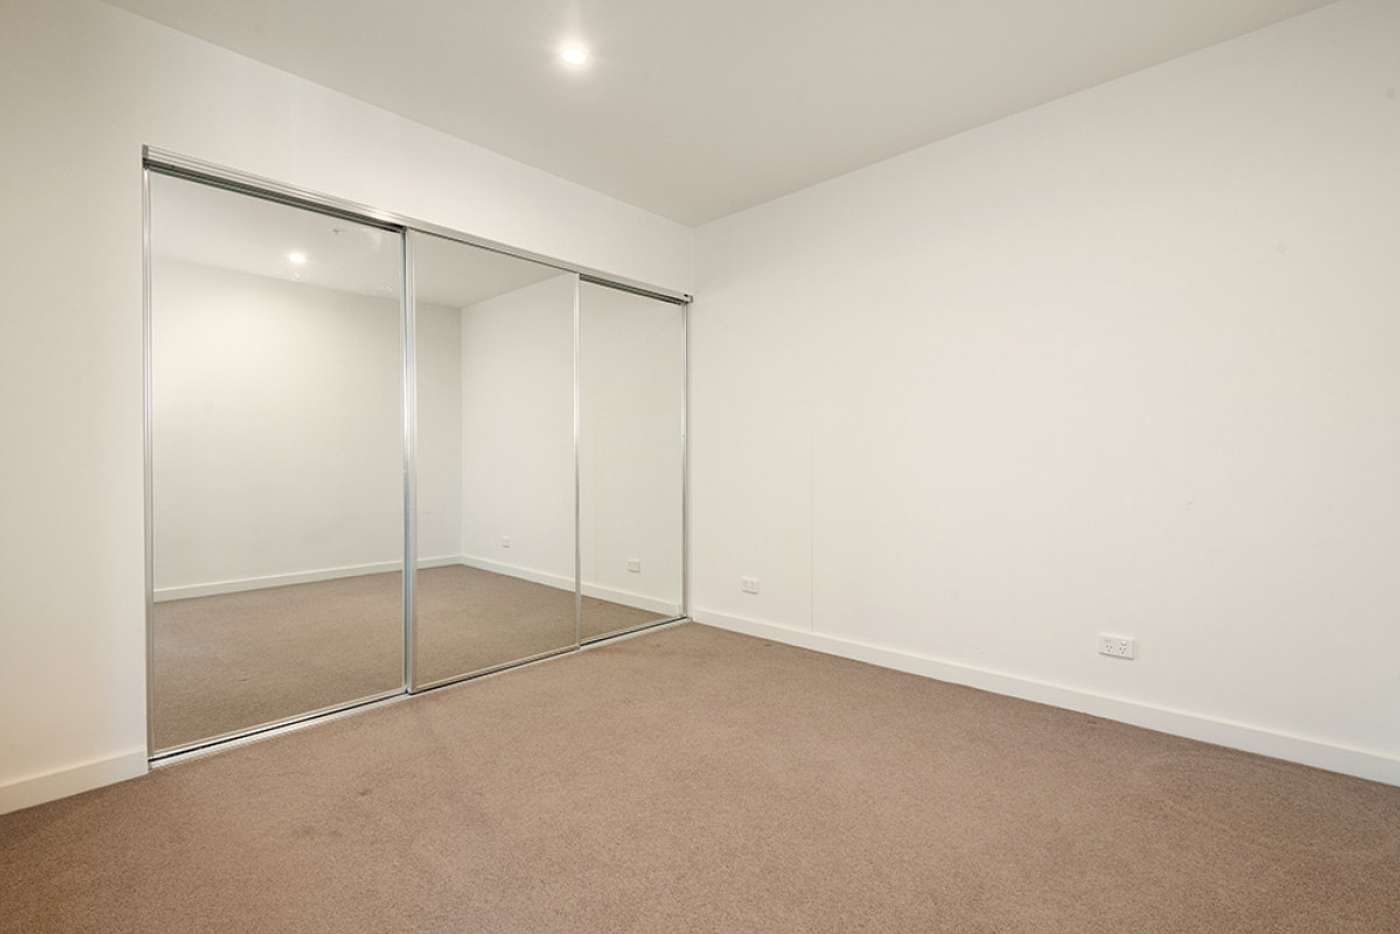 Sixth view of Homely apartment listing, 209/6 Railway Road, Cheltenham VIC 3192